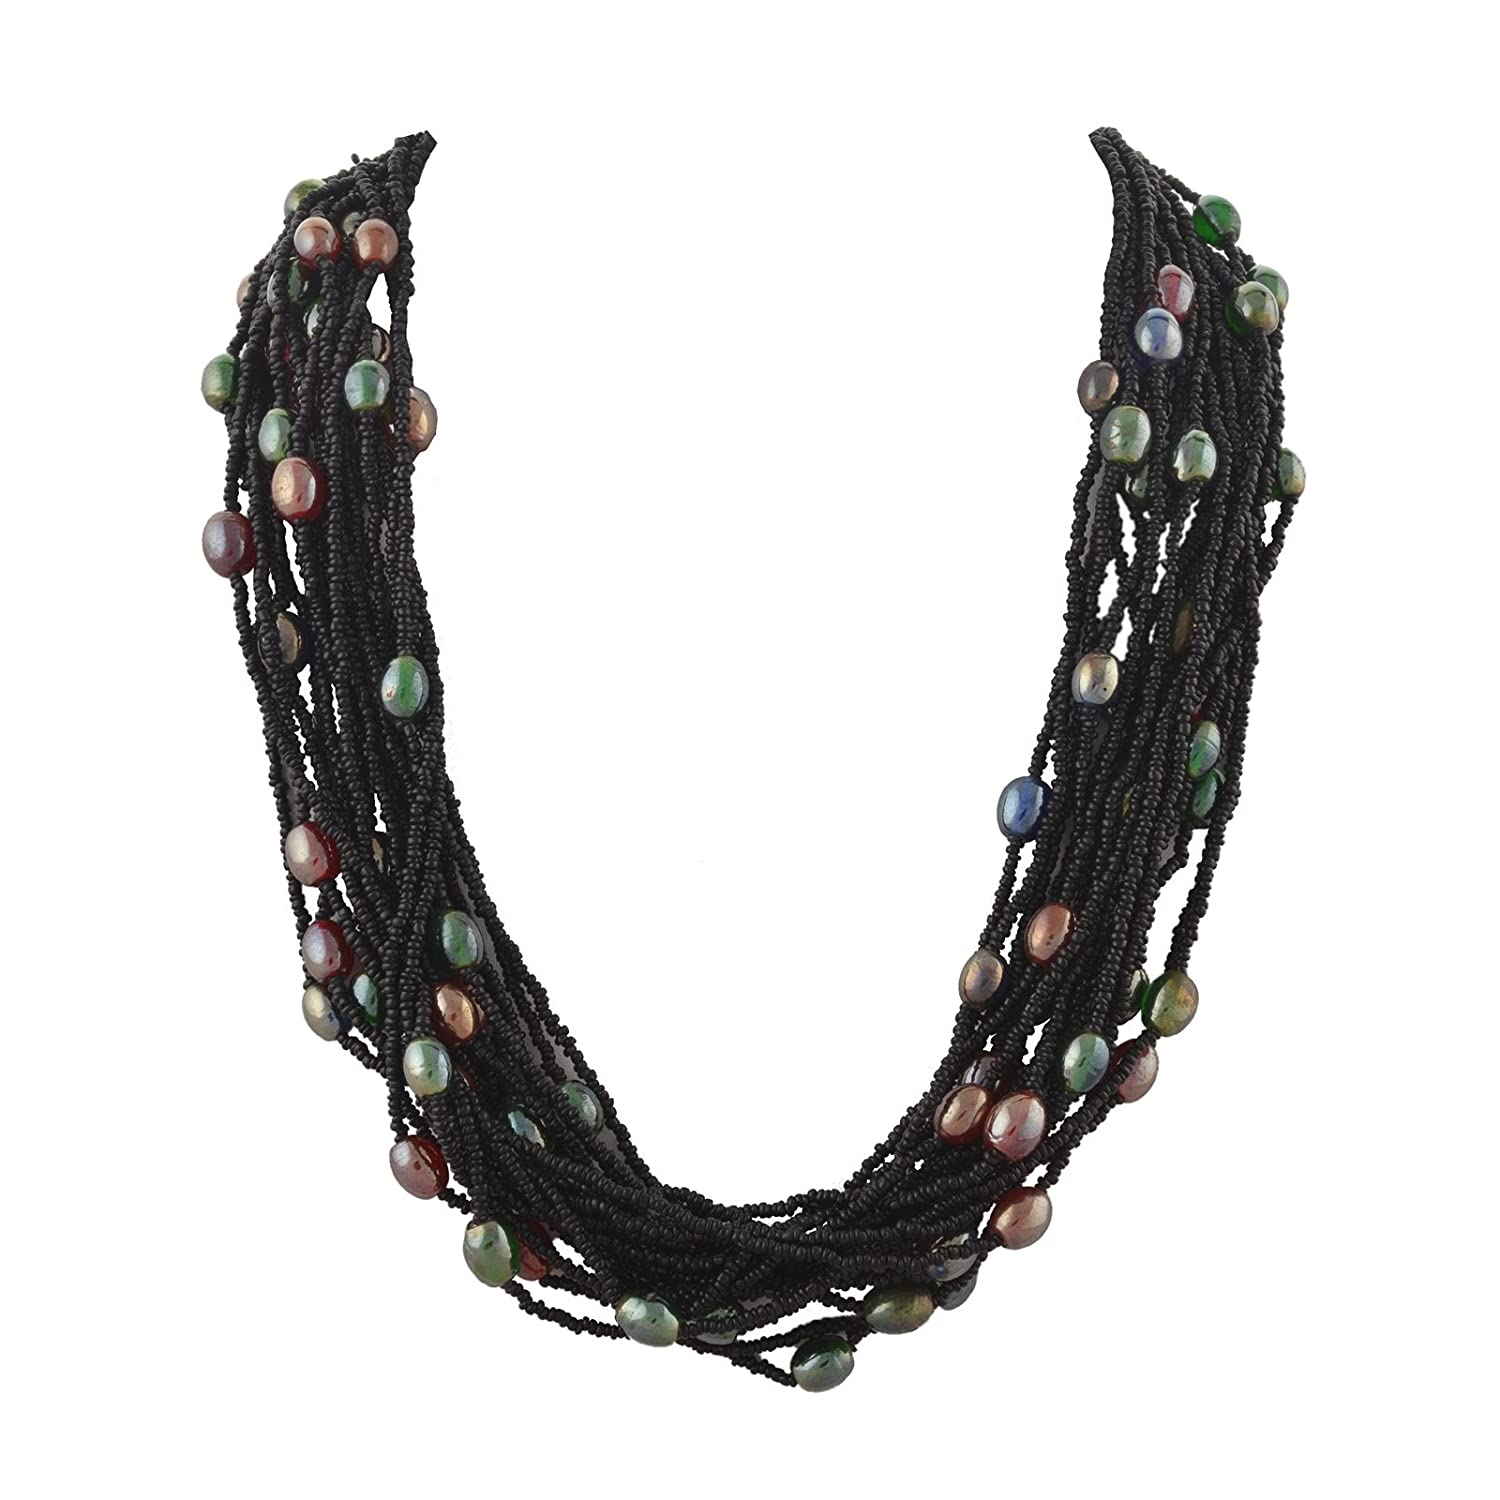 Ornamenta Fashion Handmade Beaded Multi strand Necklace with Glass Beads For Girls and Women JAN-1027